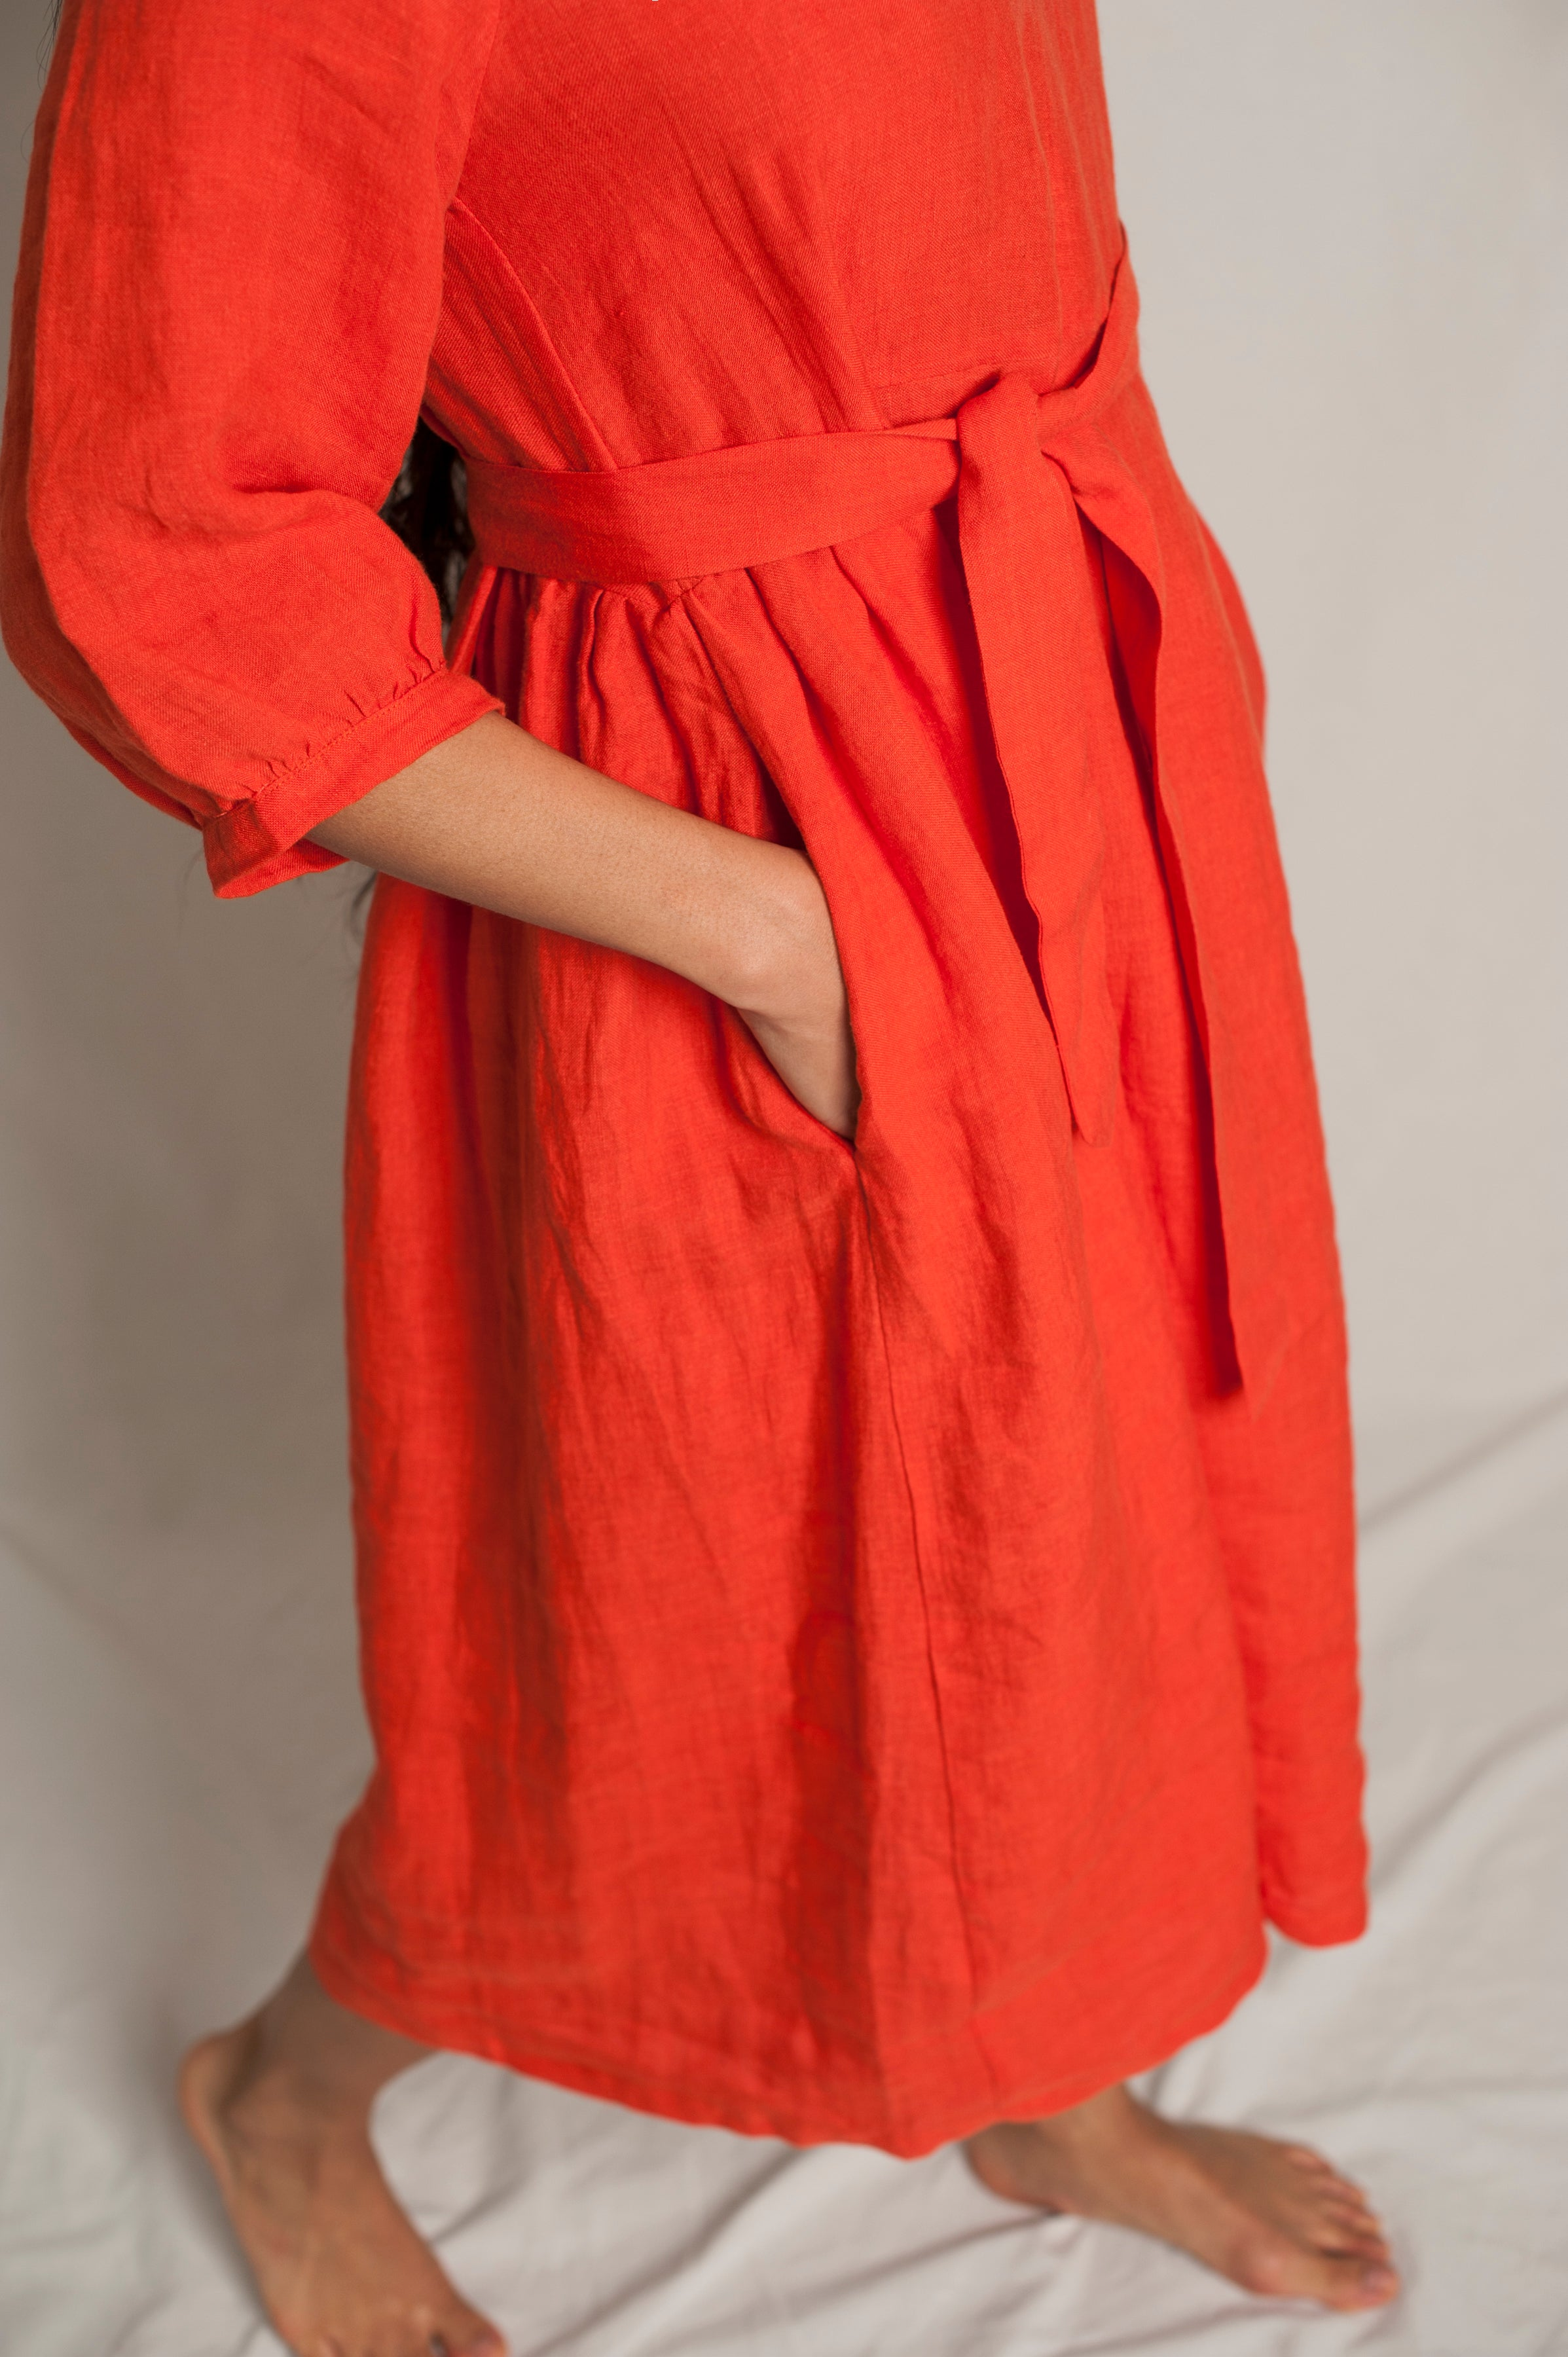 L'Envers - Flora Linen Dress - 100% French linen - Color Coral - Zoom Picture